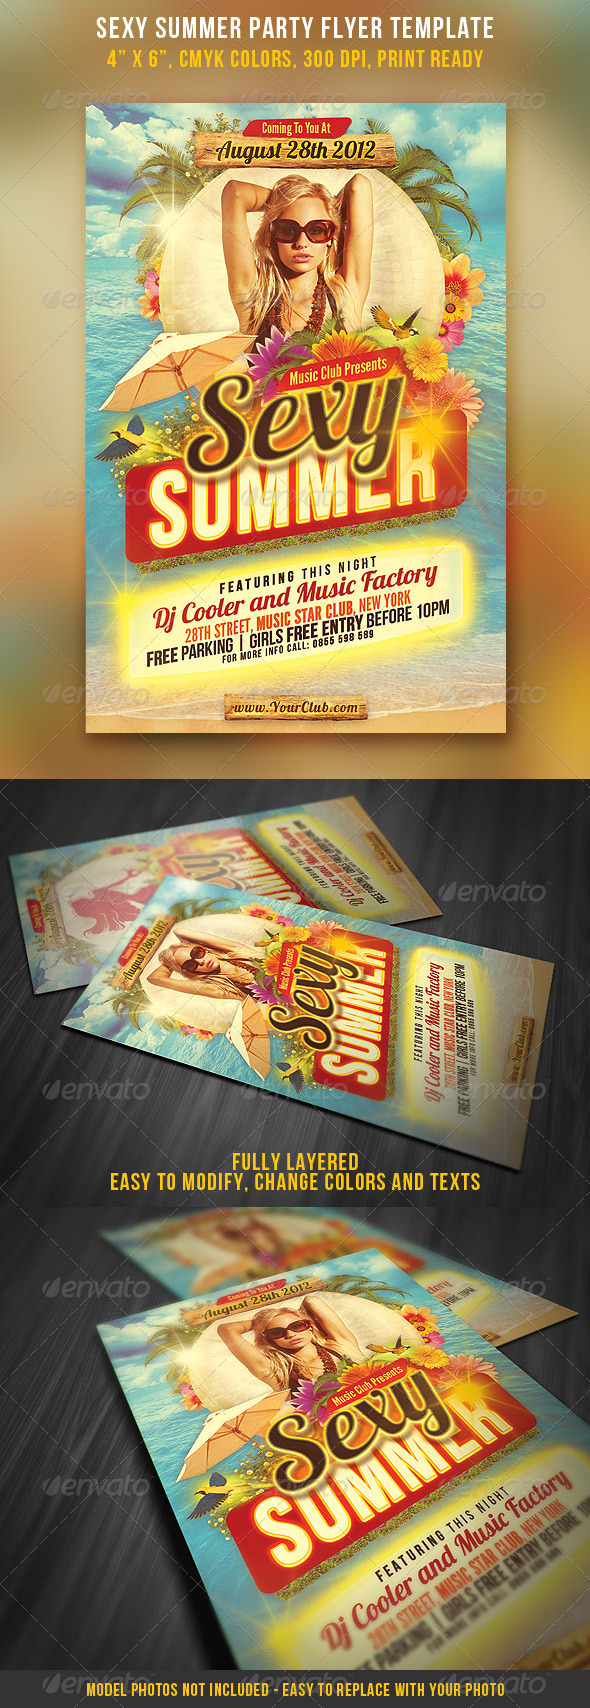 Sexy Summer Party Flyer Template - Clubs &amp; Parties Events